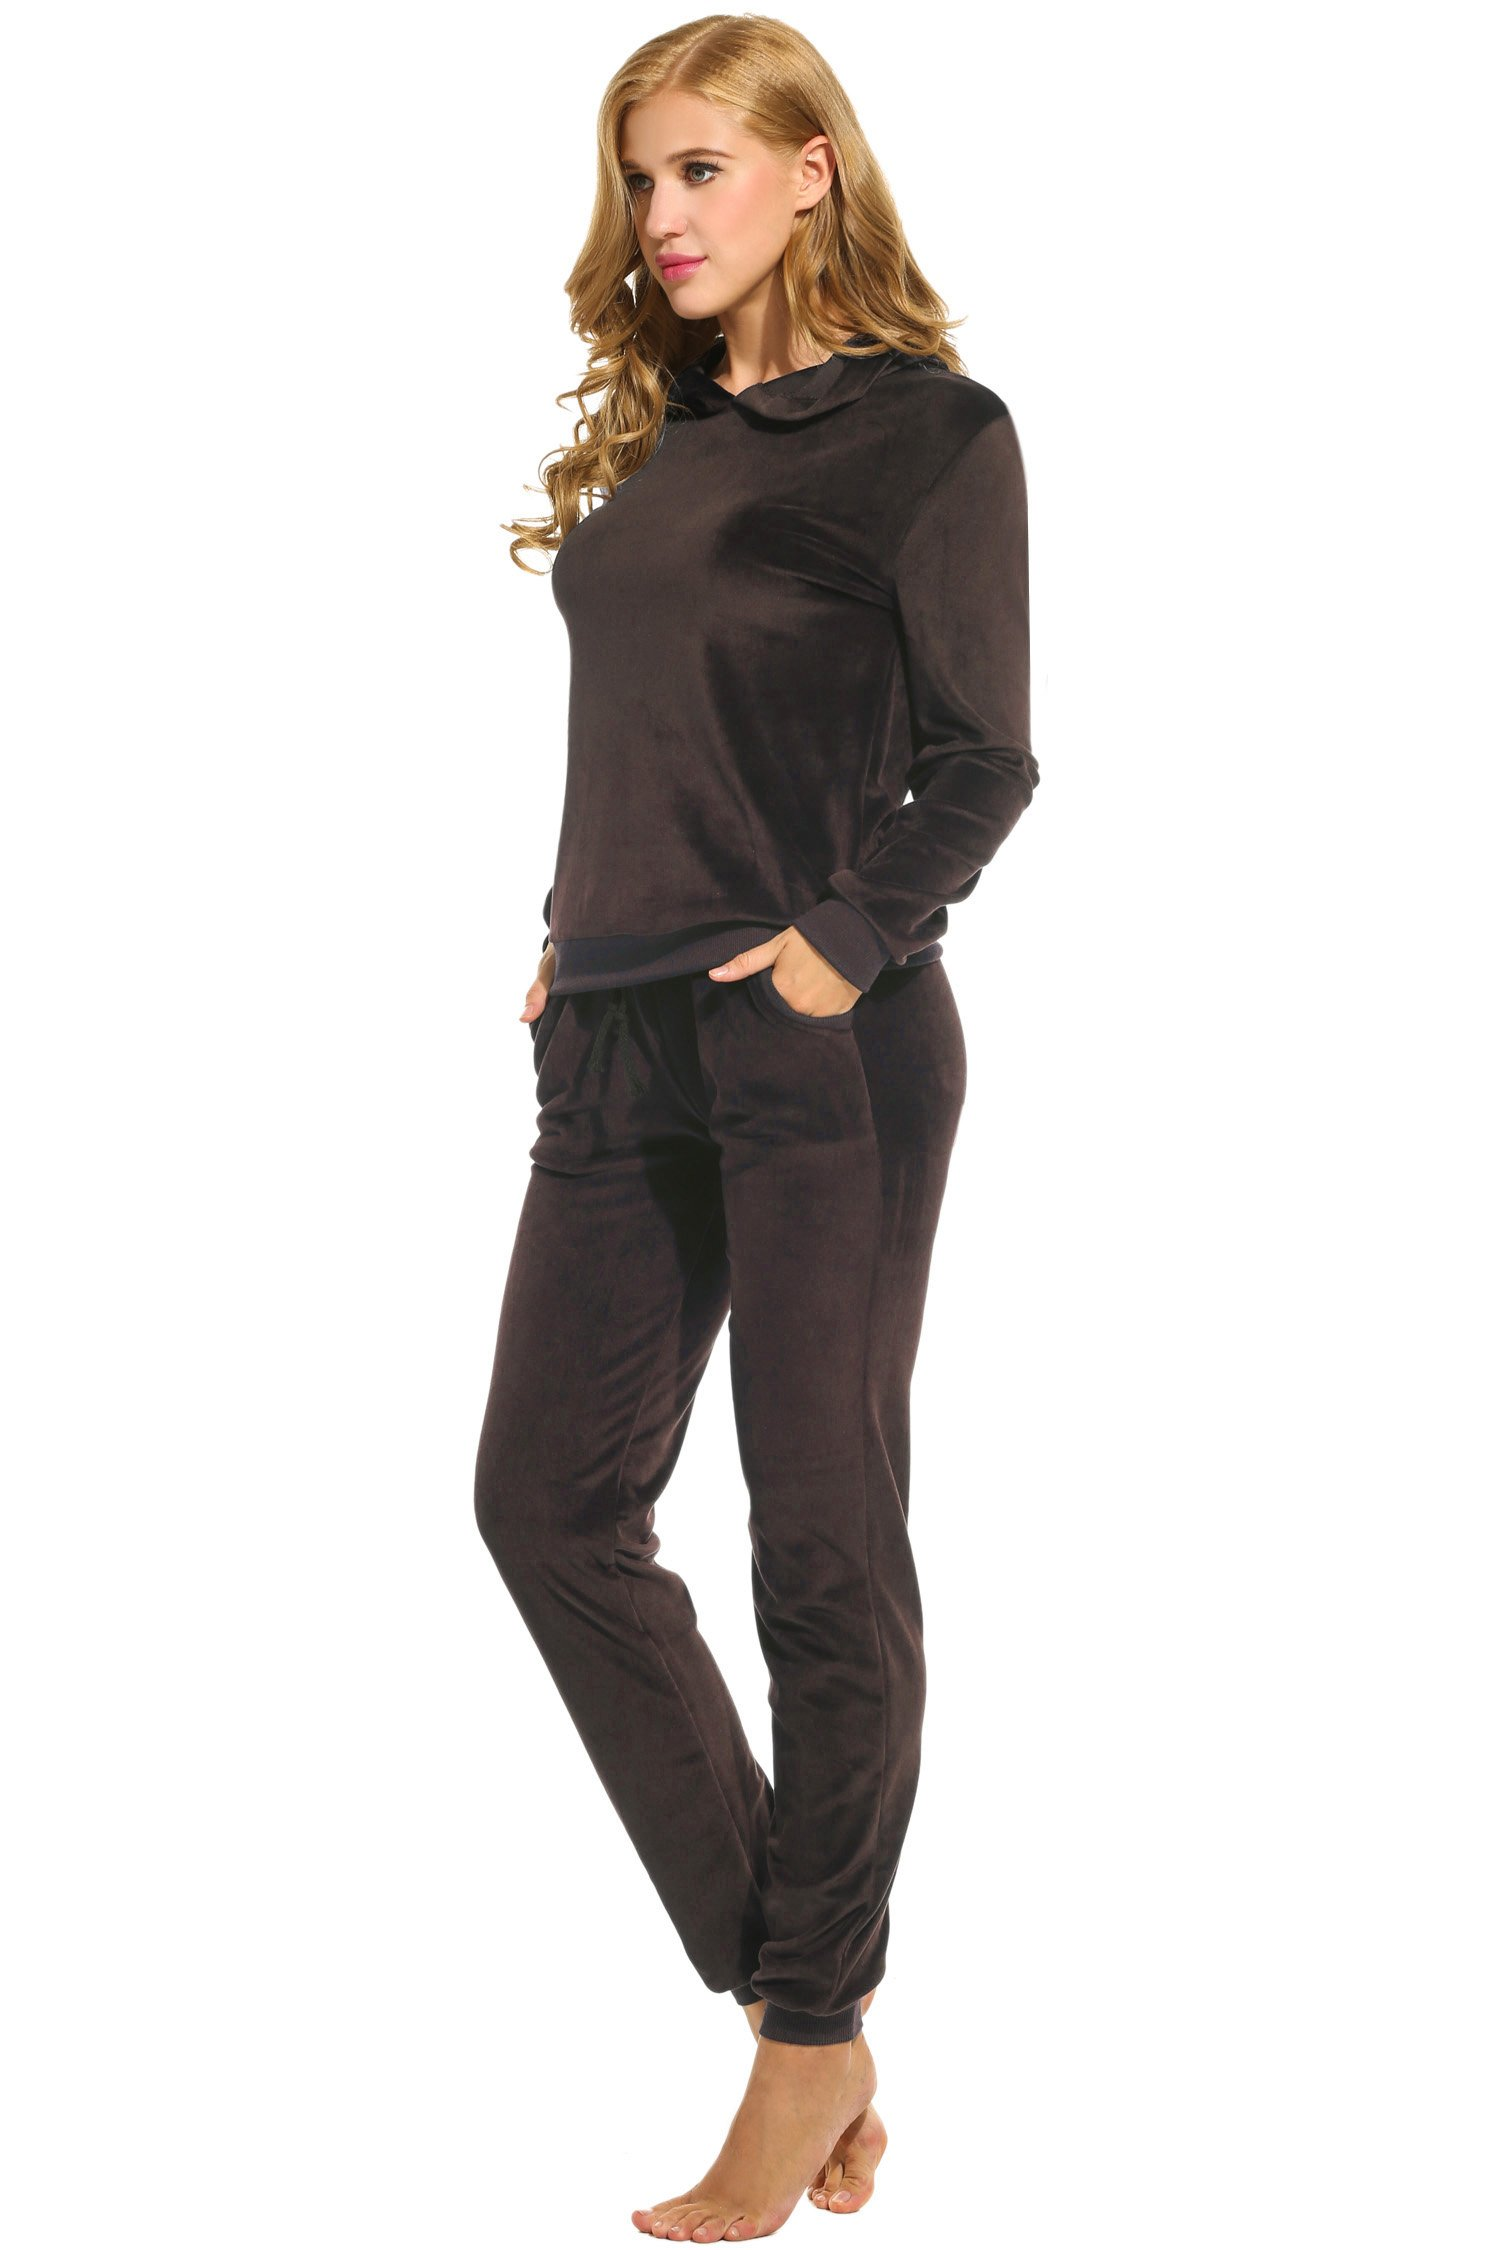 Hotouch Women's Sweatsuit Set Velour Hoodie and Track Pants Coffee L by Hotouch (Image #3)